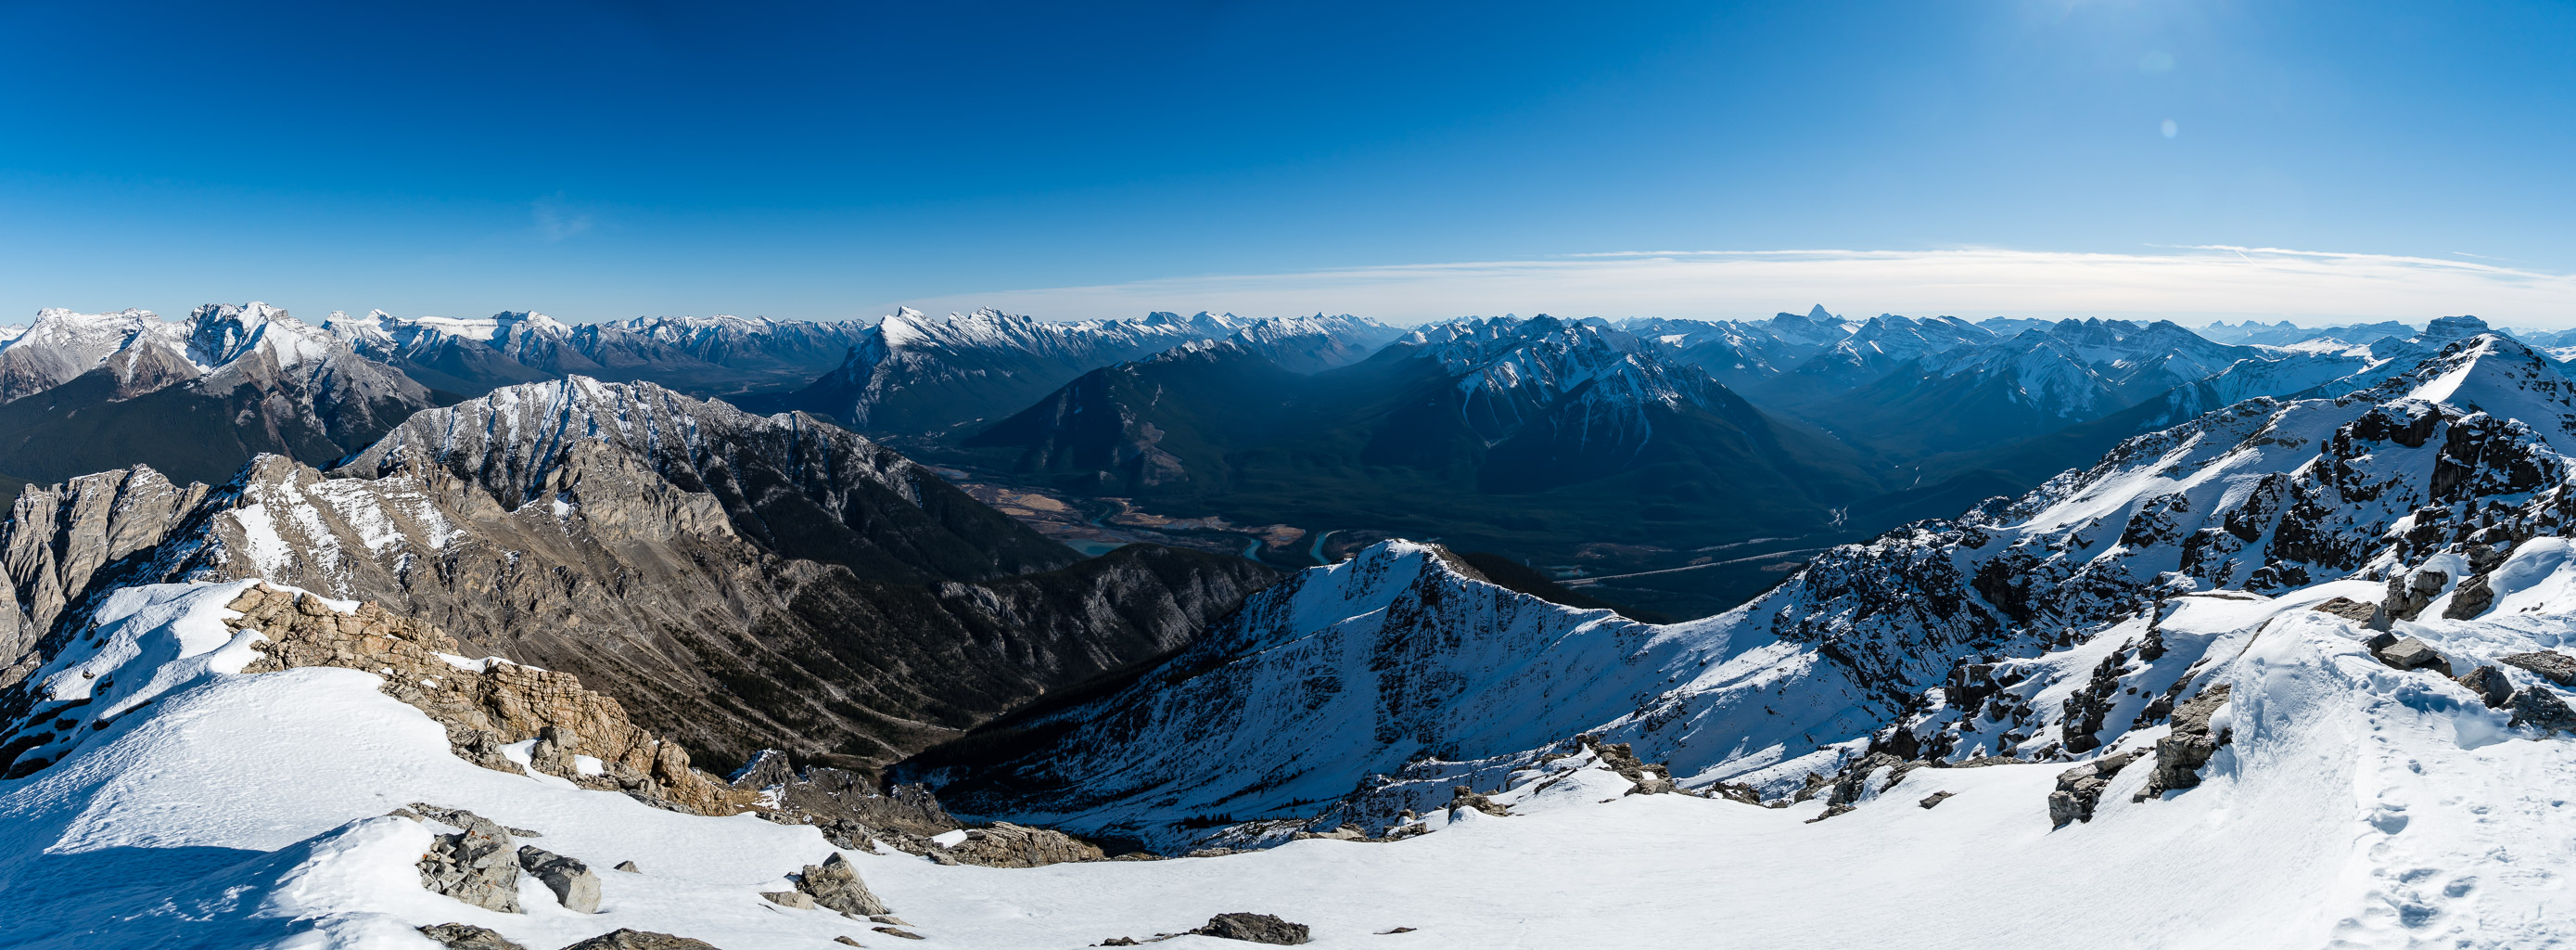 Summit views towards Banff. Assiniboine at distant center right.